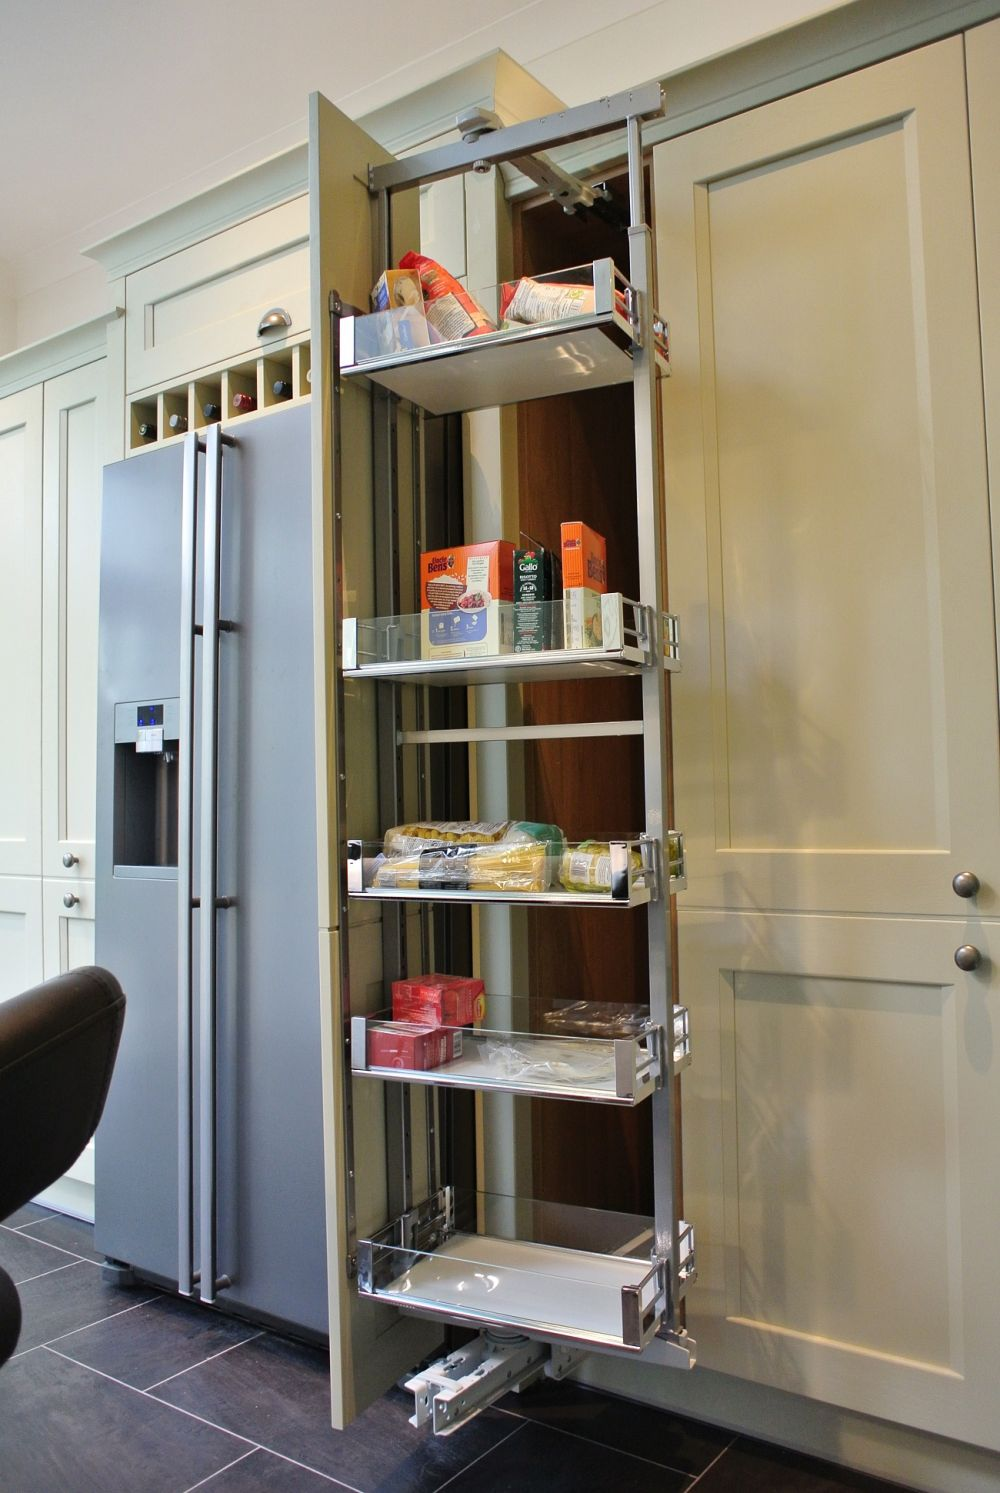 Rotating pull out larder. Pull towards you, push left or right, baskets spin 90 degrees for ease of access.